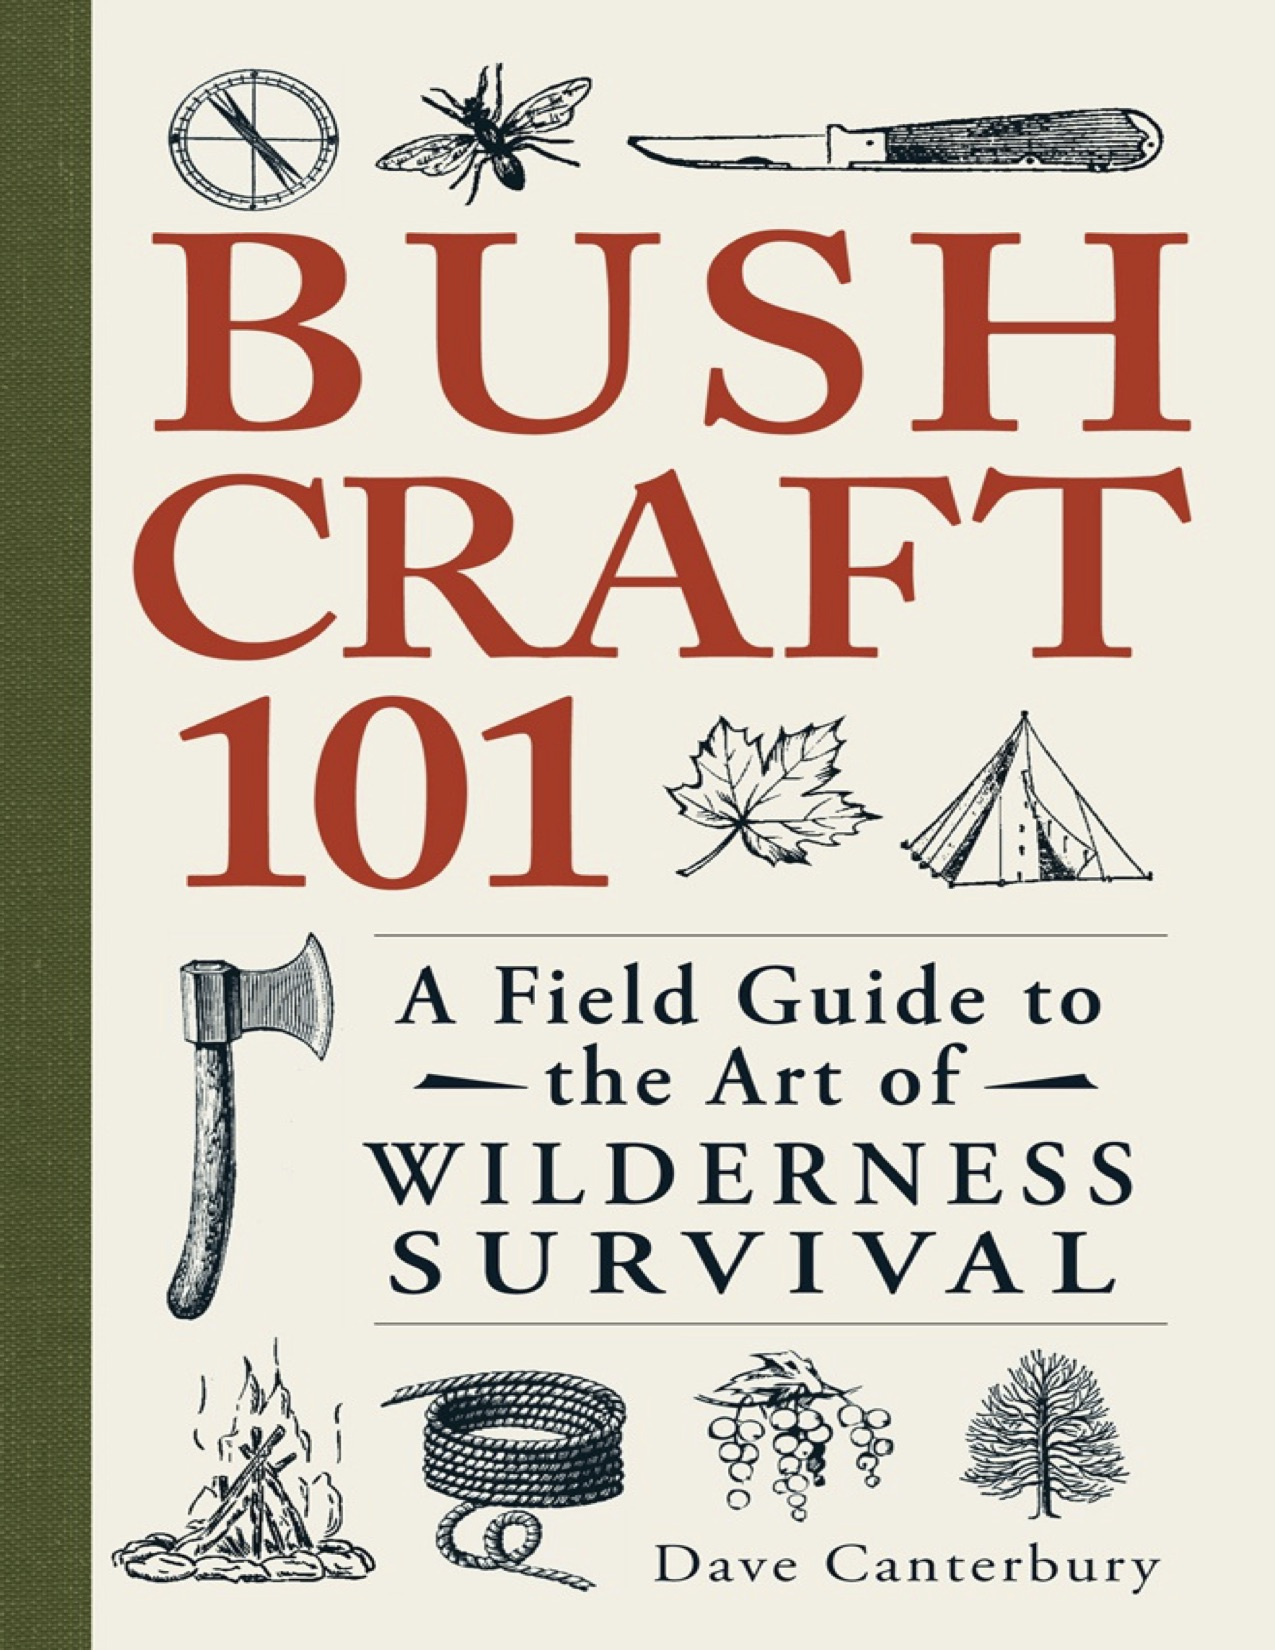 Bushcraft 101 A Field Guide to the Art of Wilderness Survival by Dave Canterbury .jpg